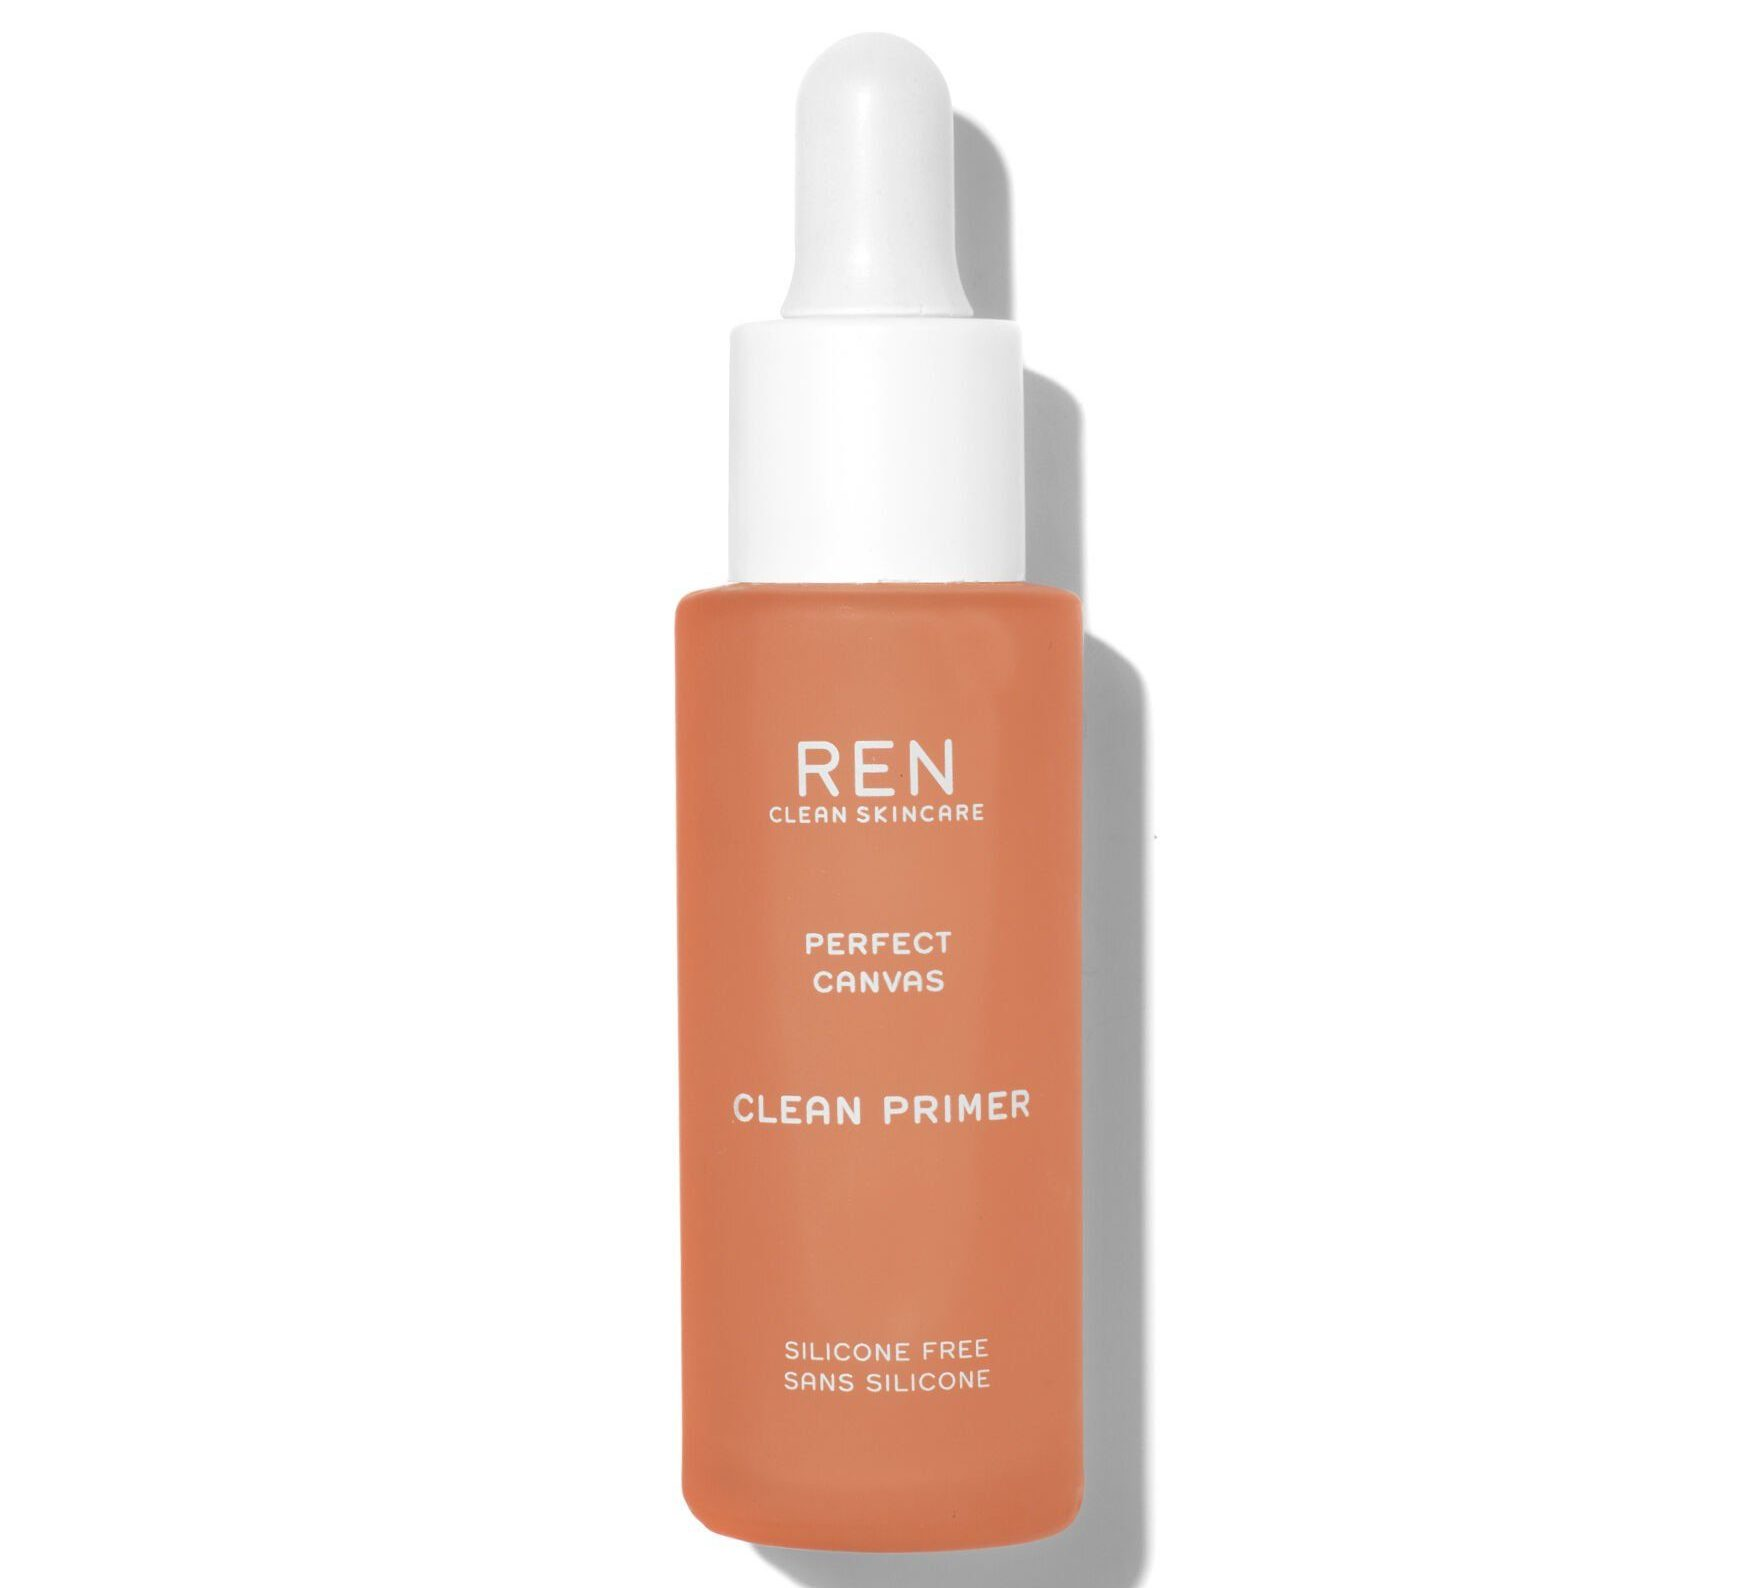 My Celebrity Life – Ren Clean Skincare Perfect Canvas Clean Primer